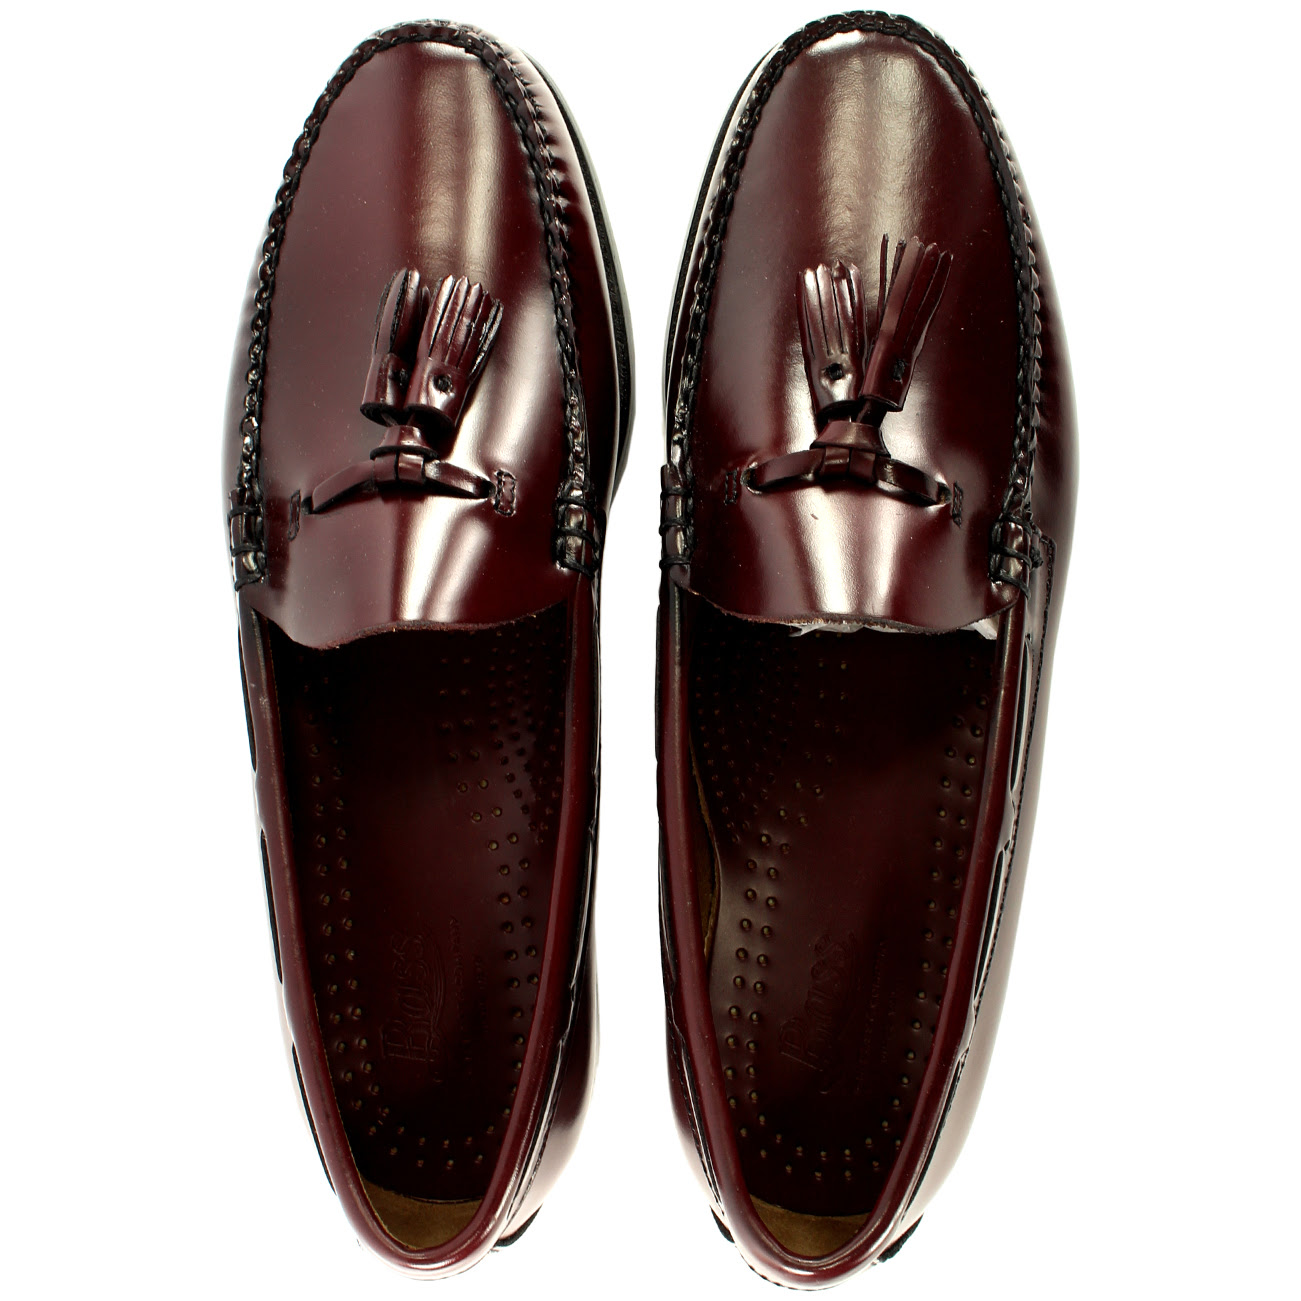 Mens G.H. Bass Larkin Slip On Tassel Smart Penny Loafer ...